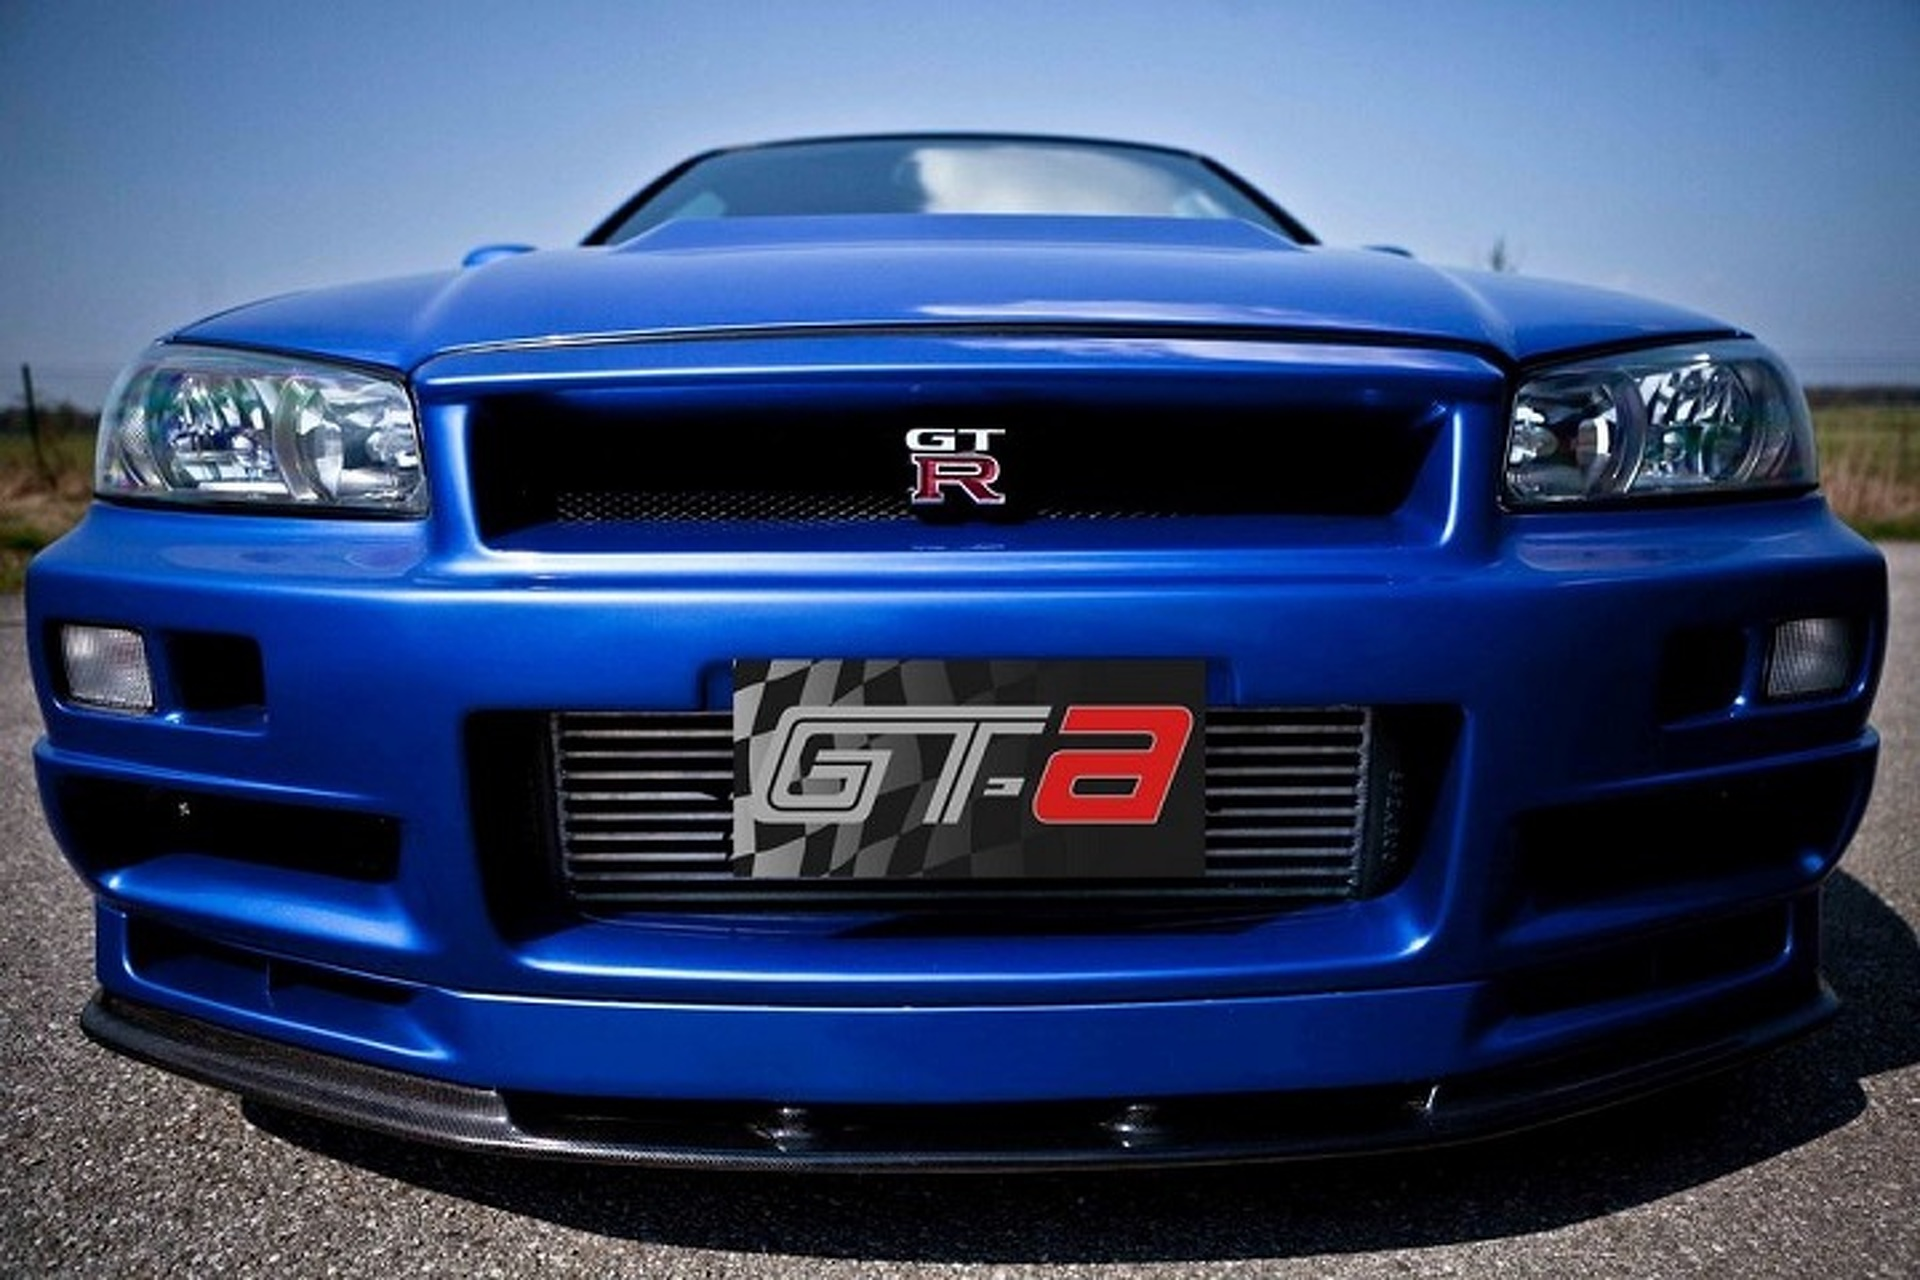 Paul walkers fast and furious 4 nissan skyline gt r is for sale paul walkers fast and furious 4 nissan skyline gt r is for sale product 2014 12 04 153053 vanachro Gallery